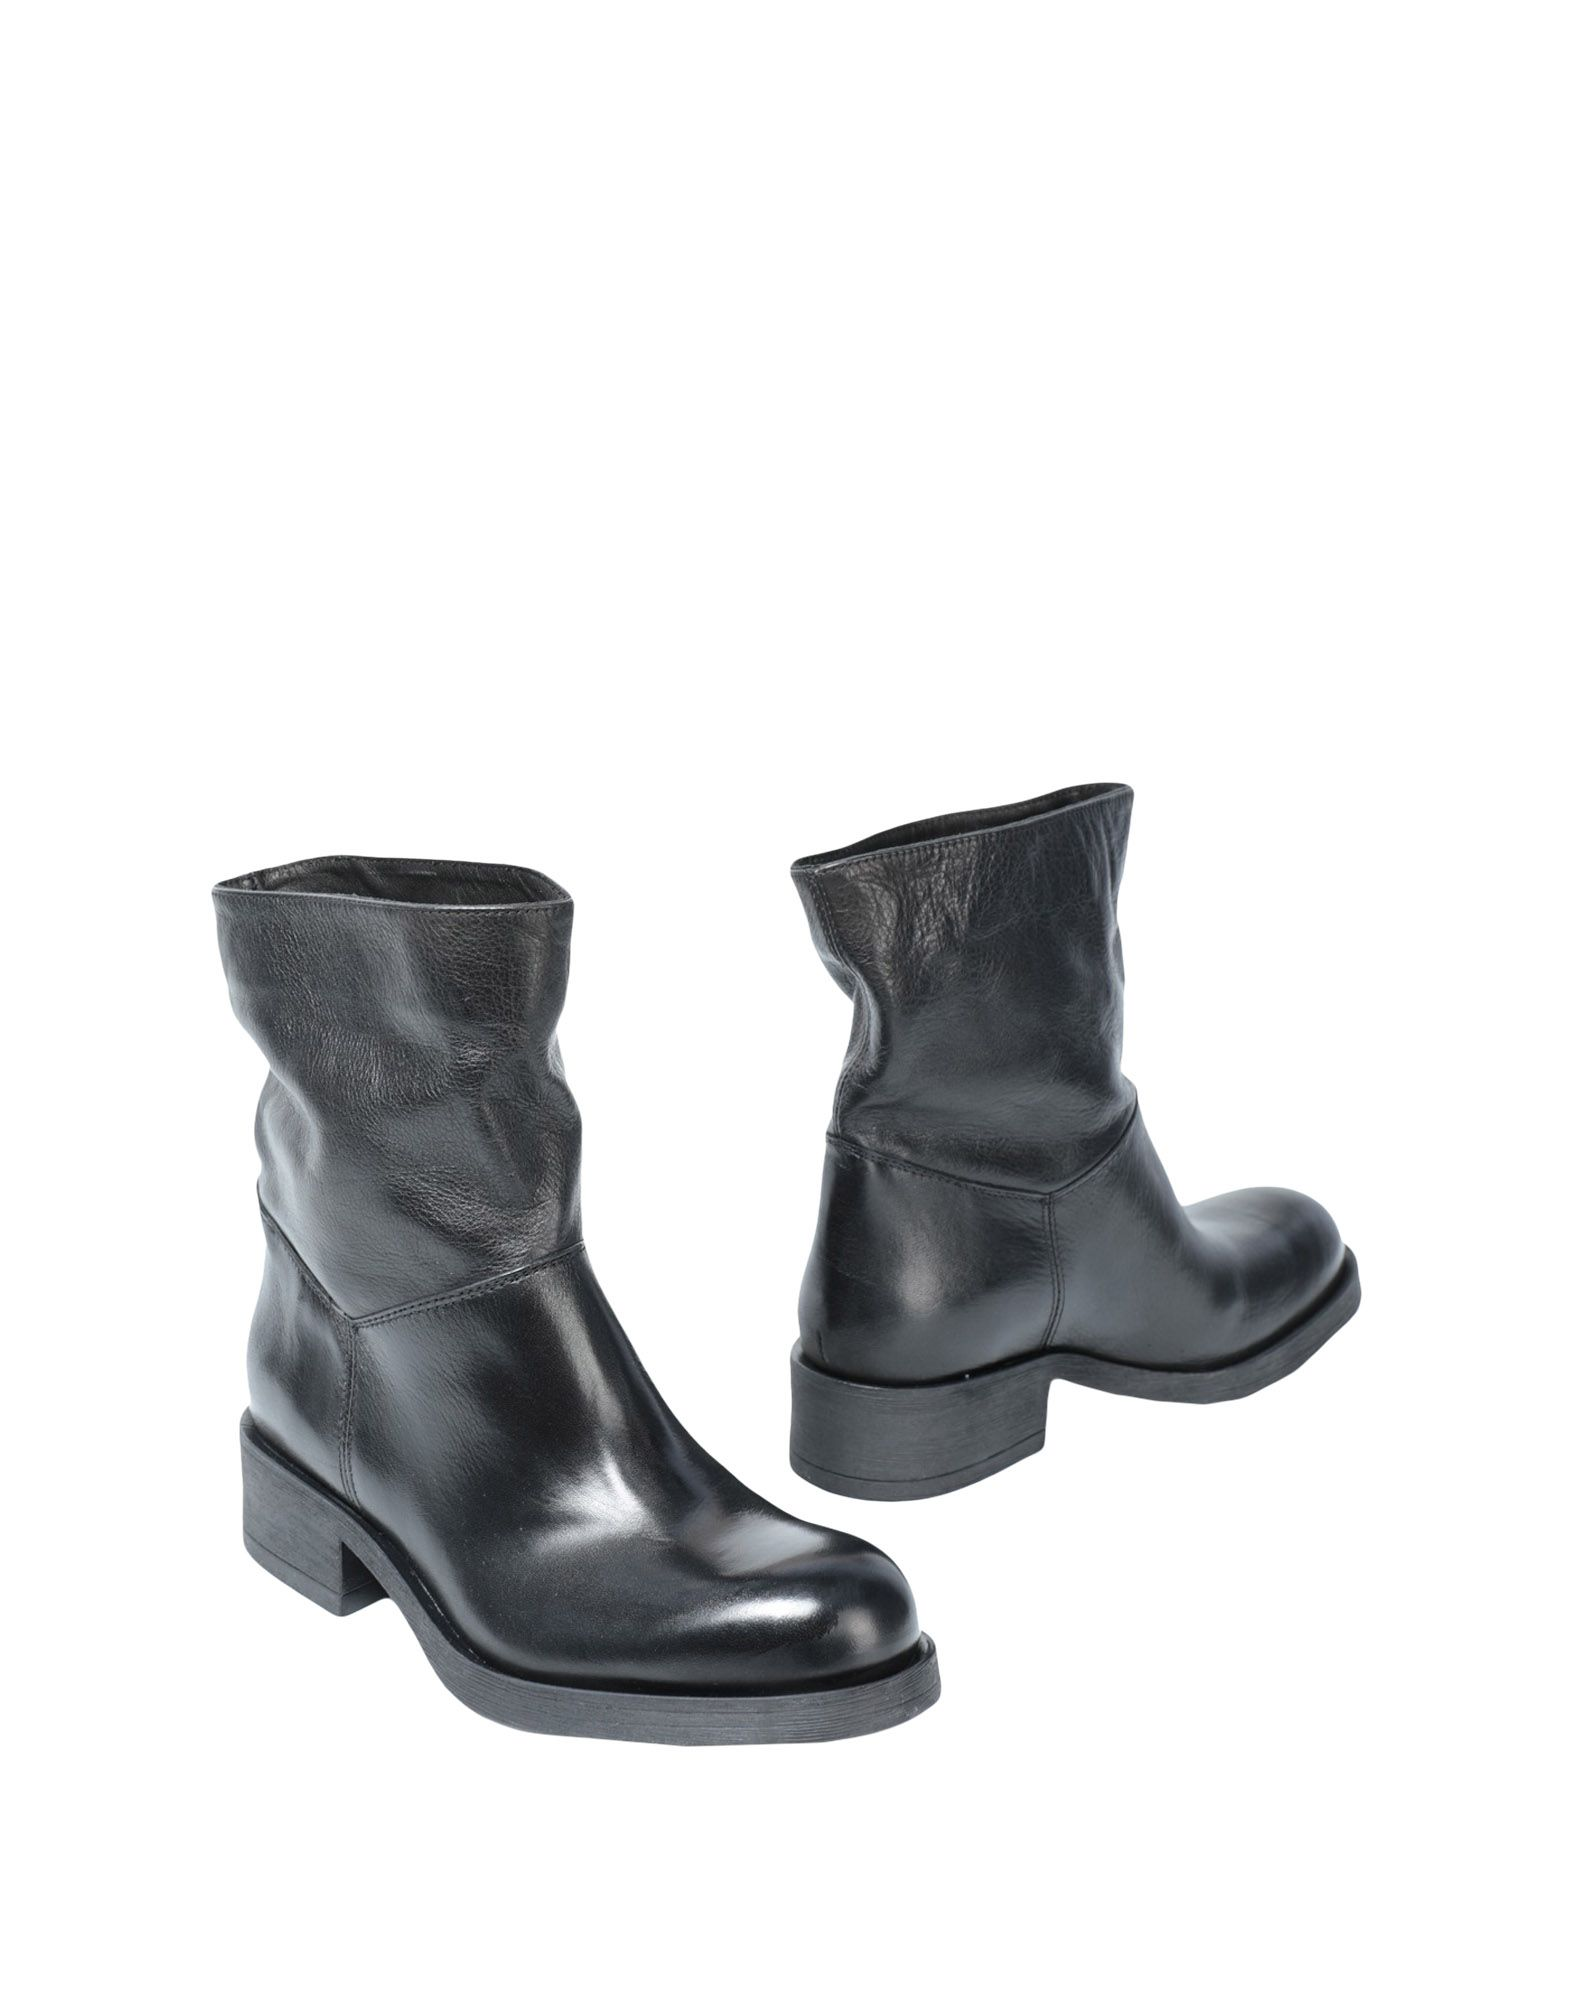 Stilvolle Stiefelette billige Schuhe Get It Stiefelette Stilvolle Damen  11514815RT 3a6432